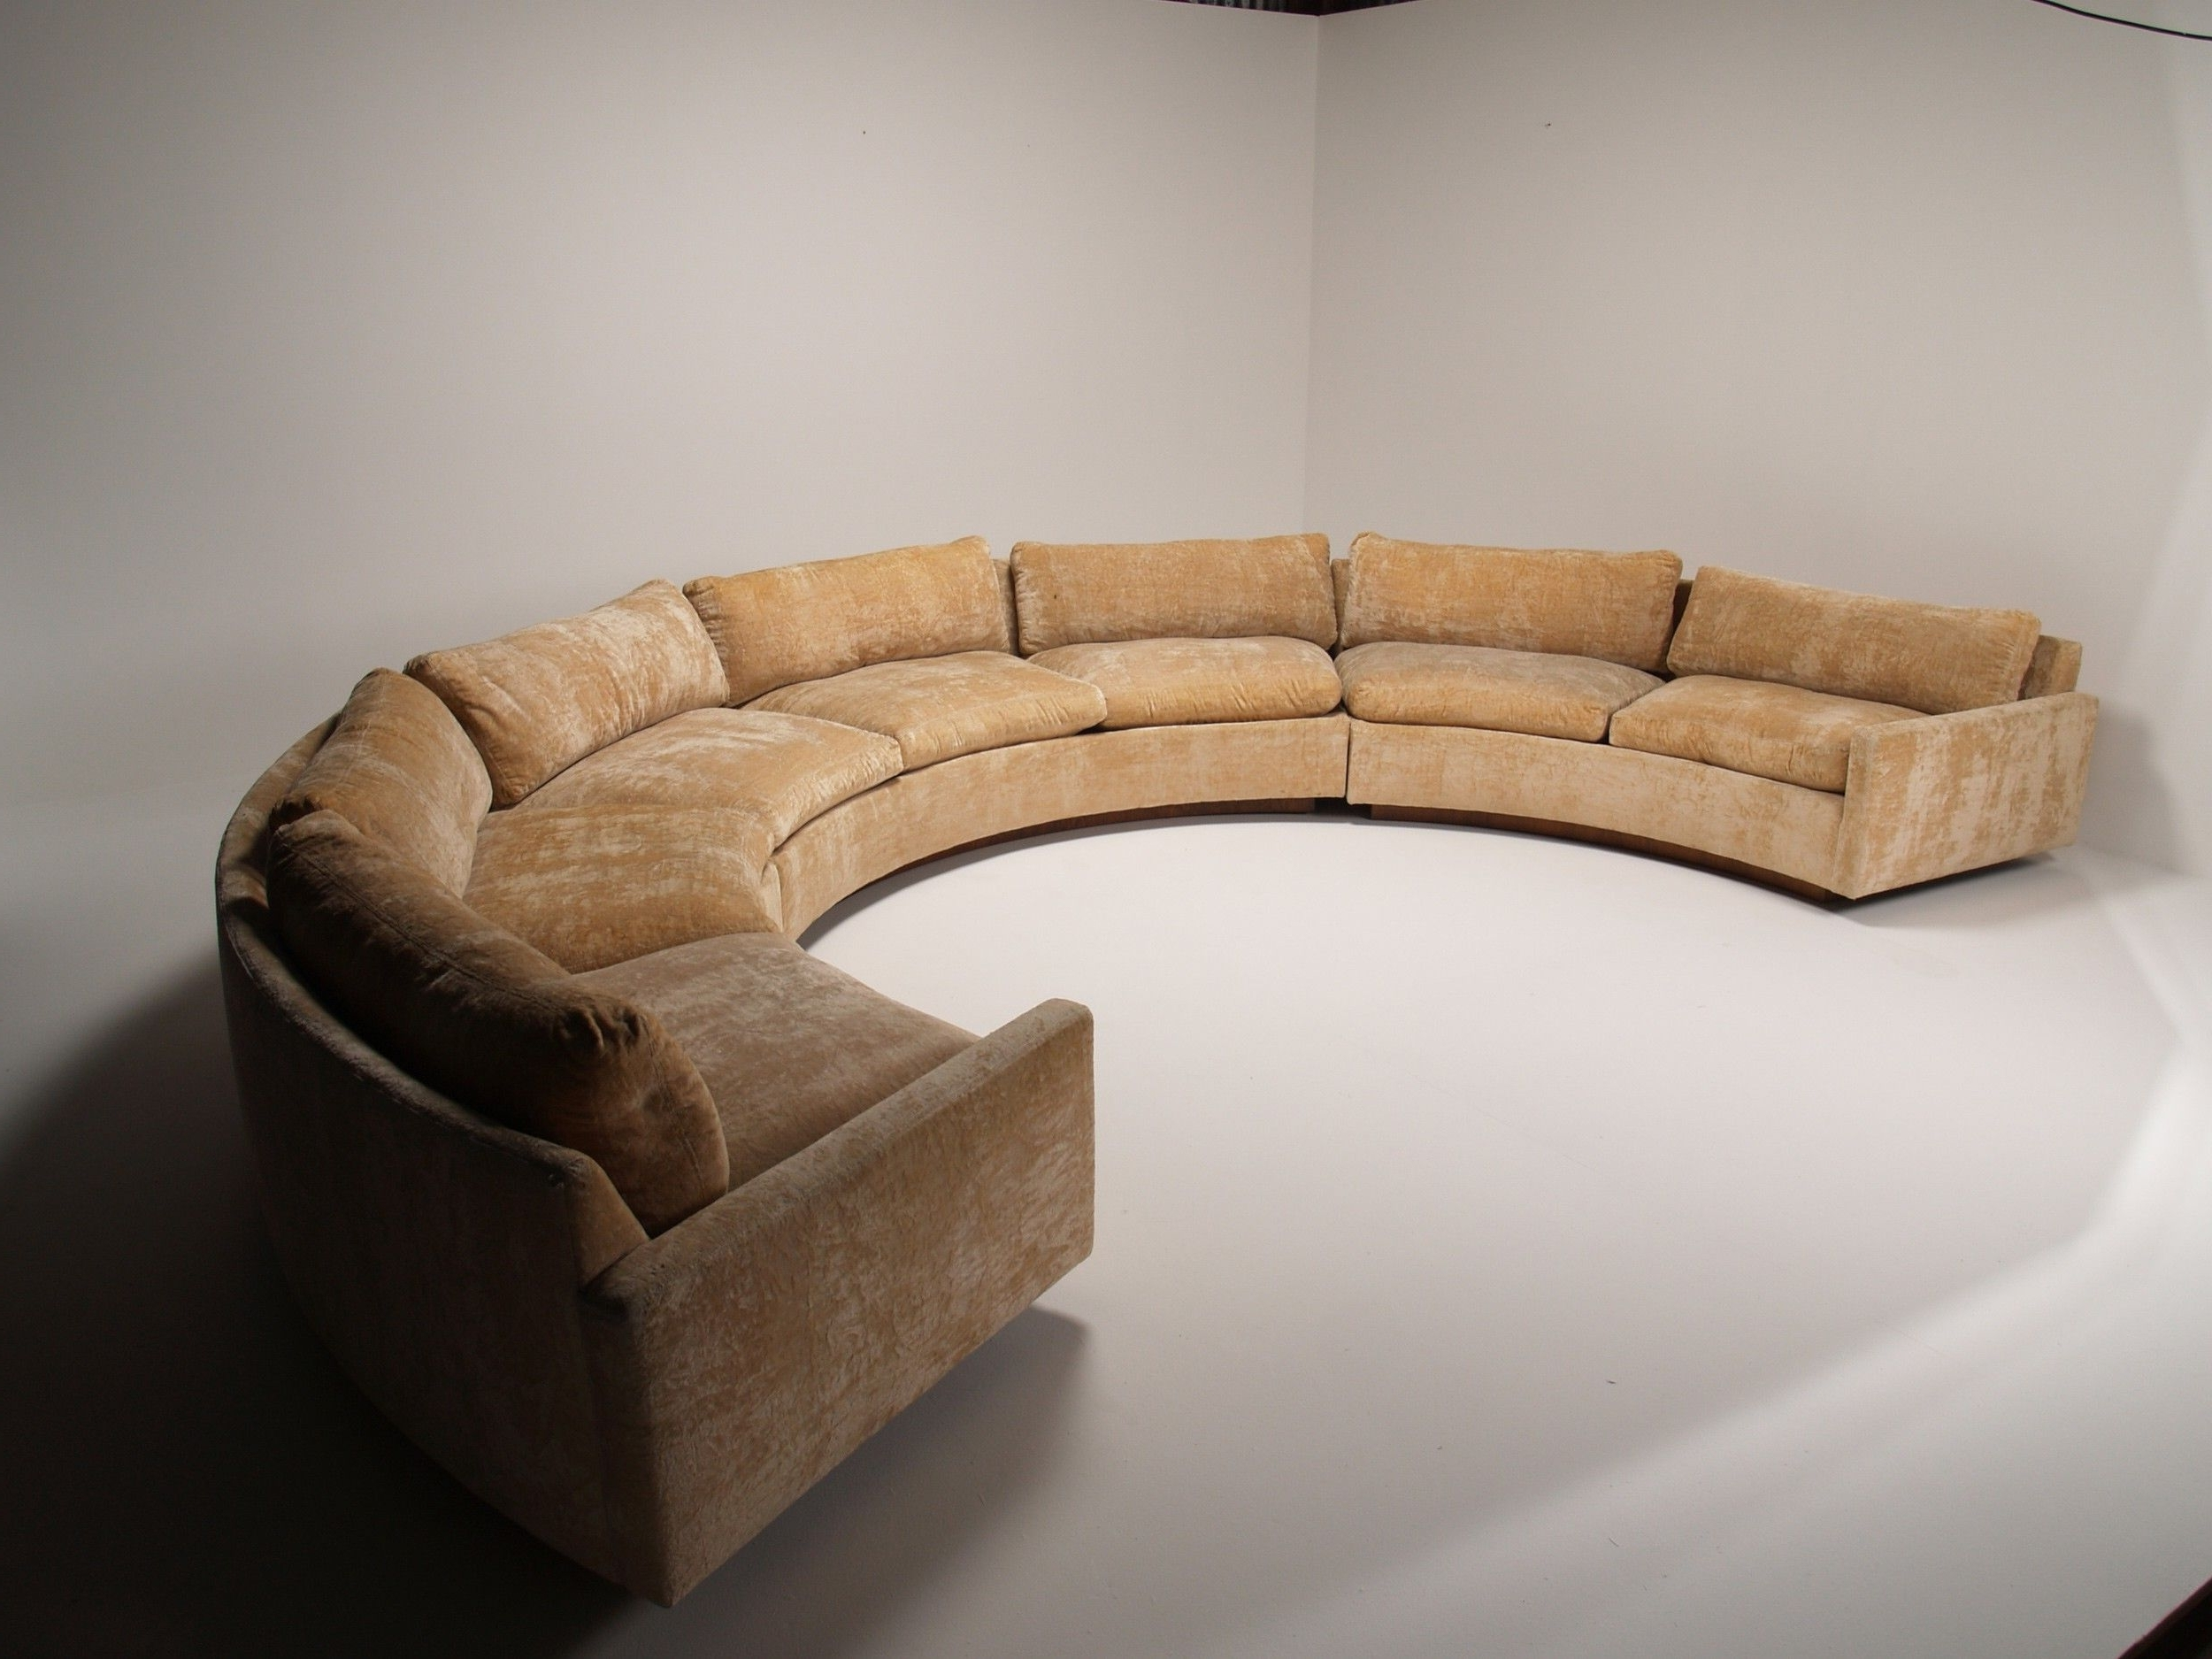 Semicircular Sofas With Famous Popular Grey Velvet Curved Couch Without Cushions As Well As In (View 9 of 15)